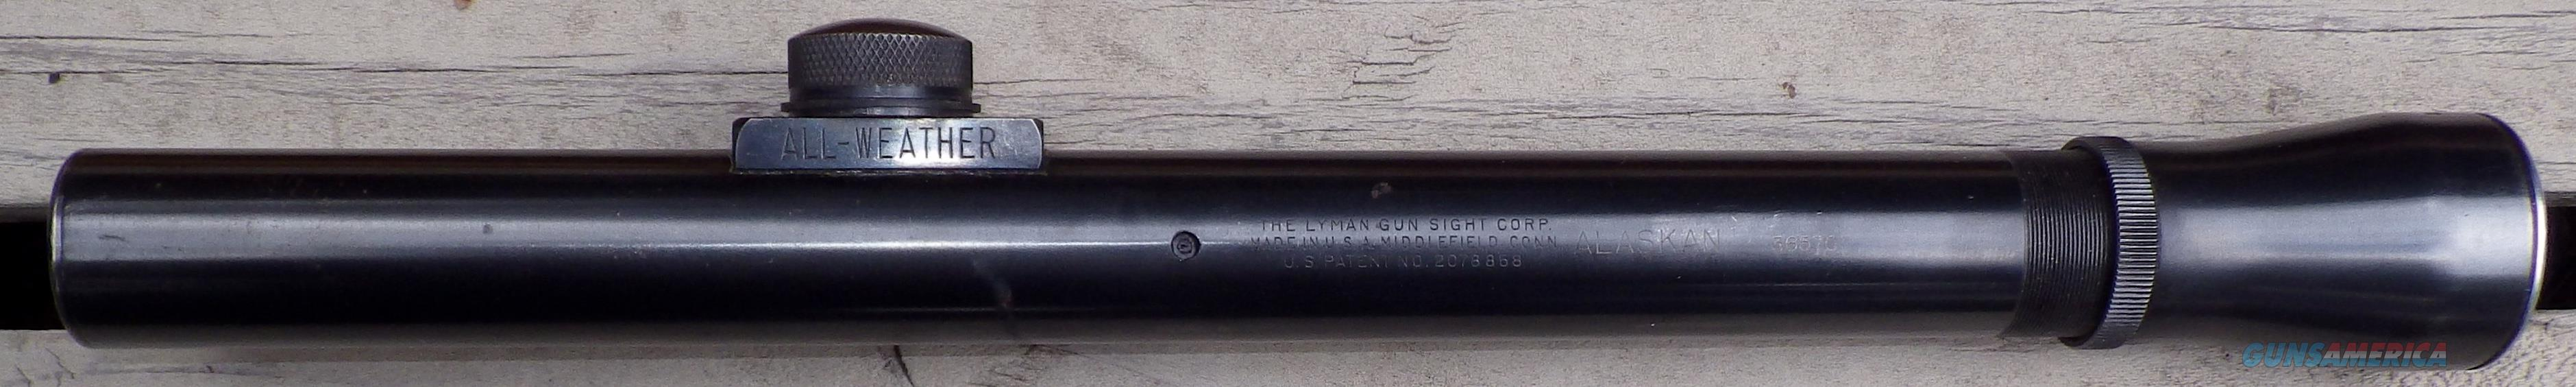 Lyman Alaskan 2.5x scope, crosshair/dot, fantastic condition  Non-Guns > Scopes/Mounts/Rings & Optics > Rifle Scopes > Fixed Focal Length